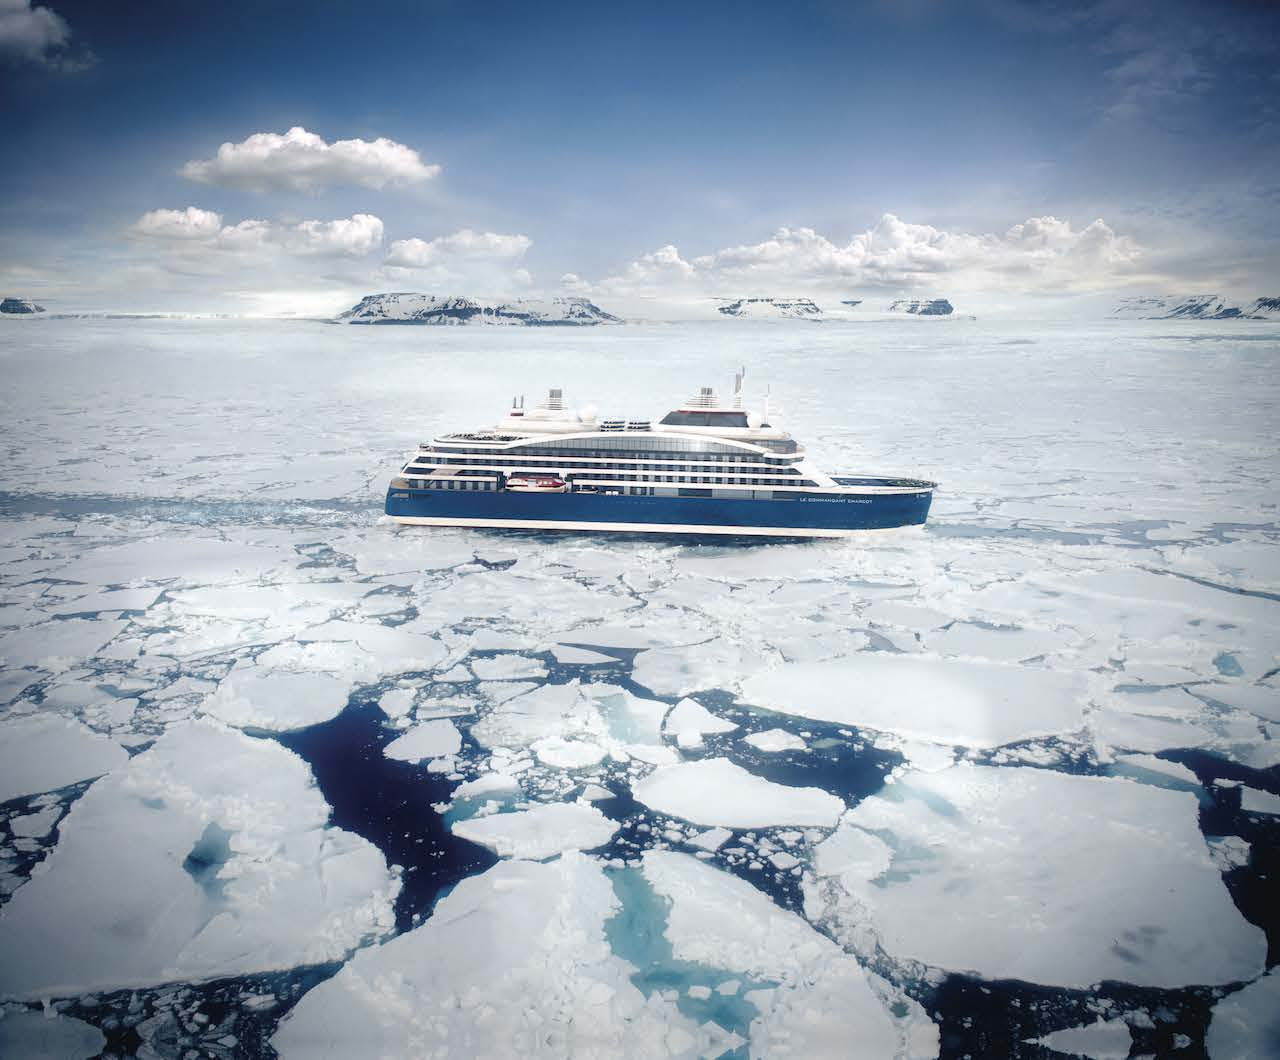 Small ship cruise line Ponant's flagship vessel Le Commandant Charcot prepares for an unforgettable northern summer Arctic cruising season.